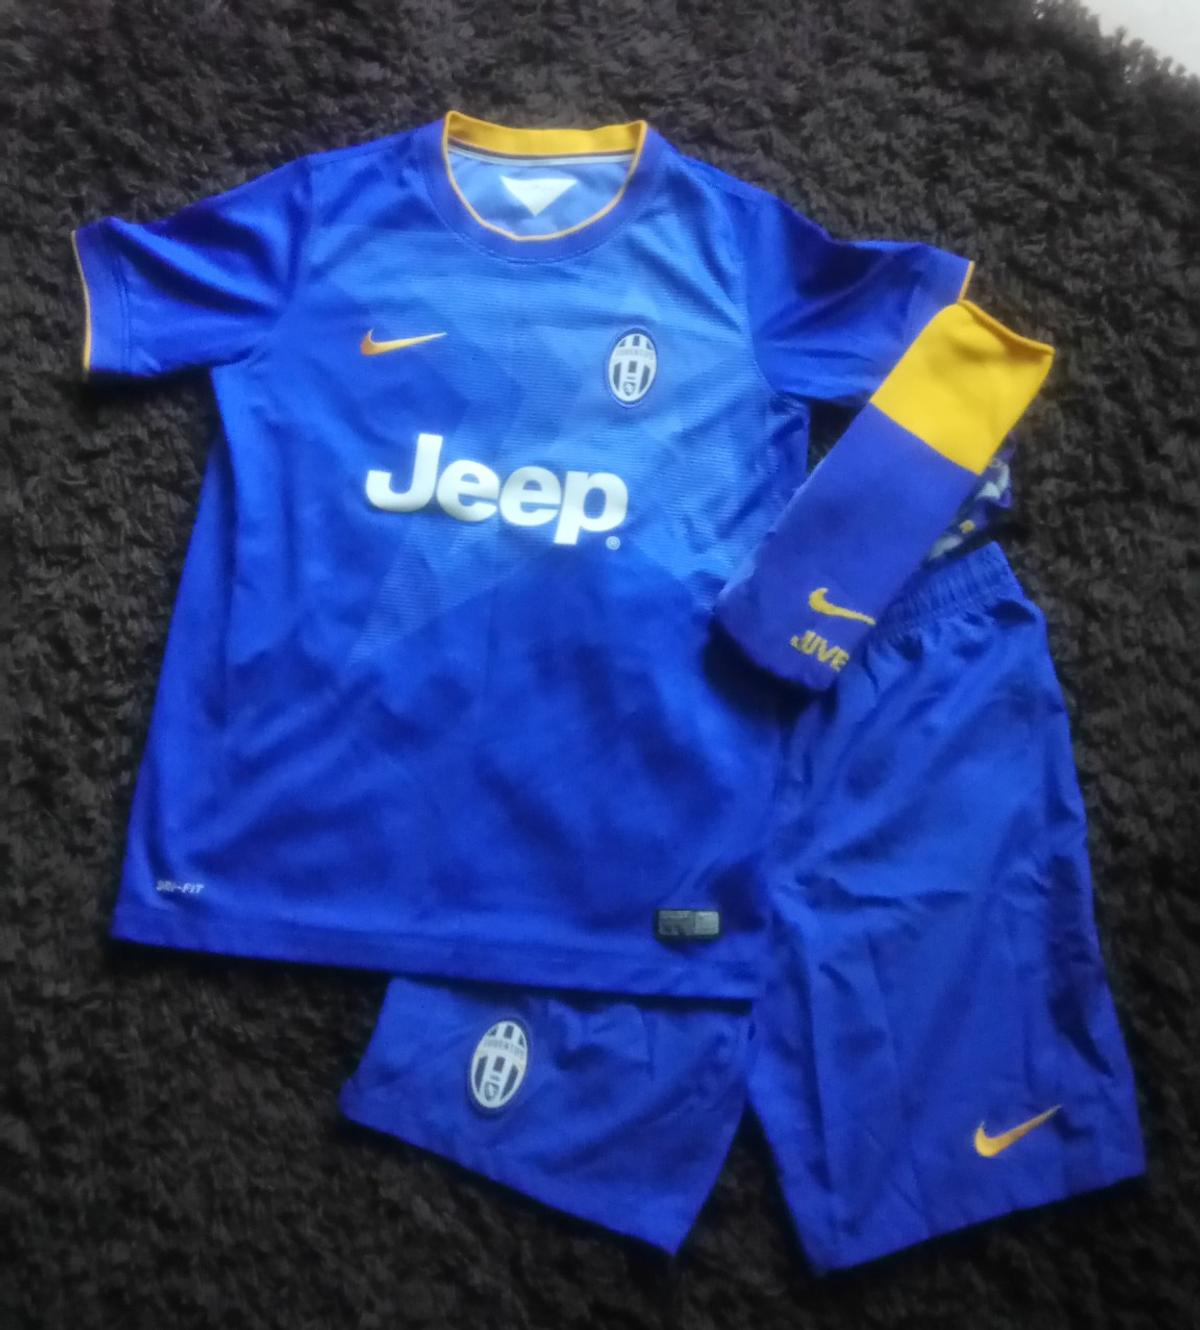 best loved 96536 819e9 Juventus football kit